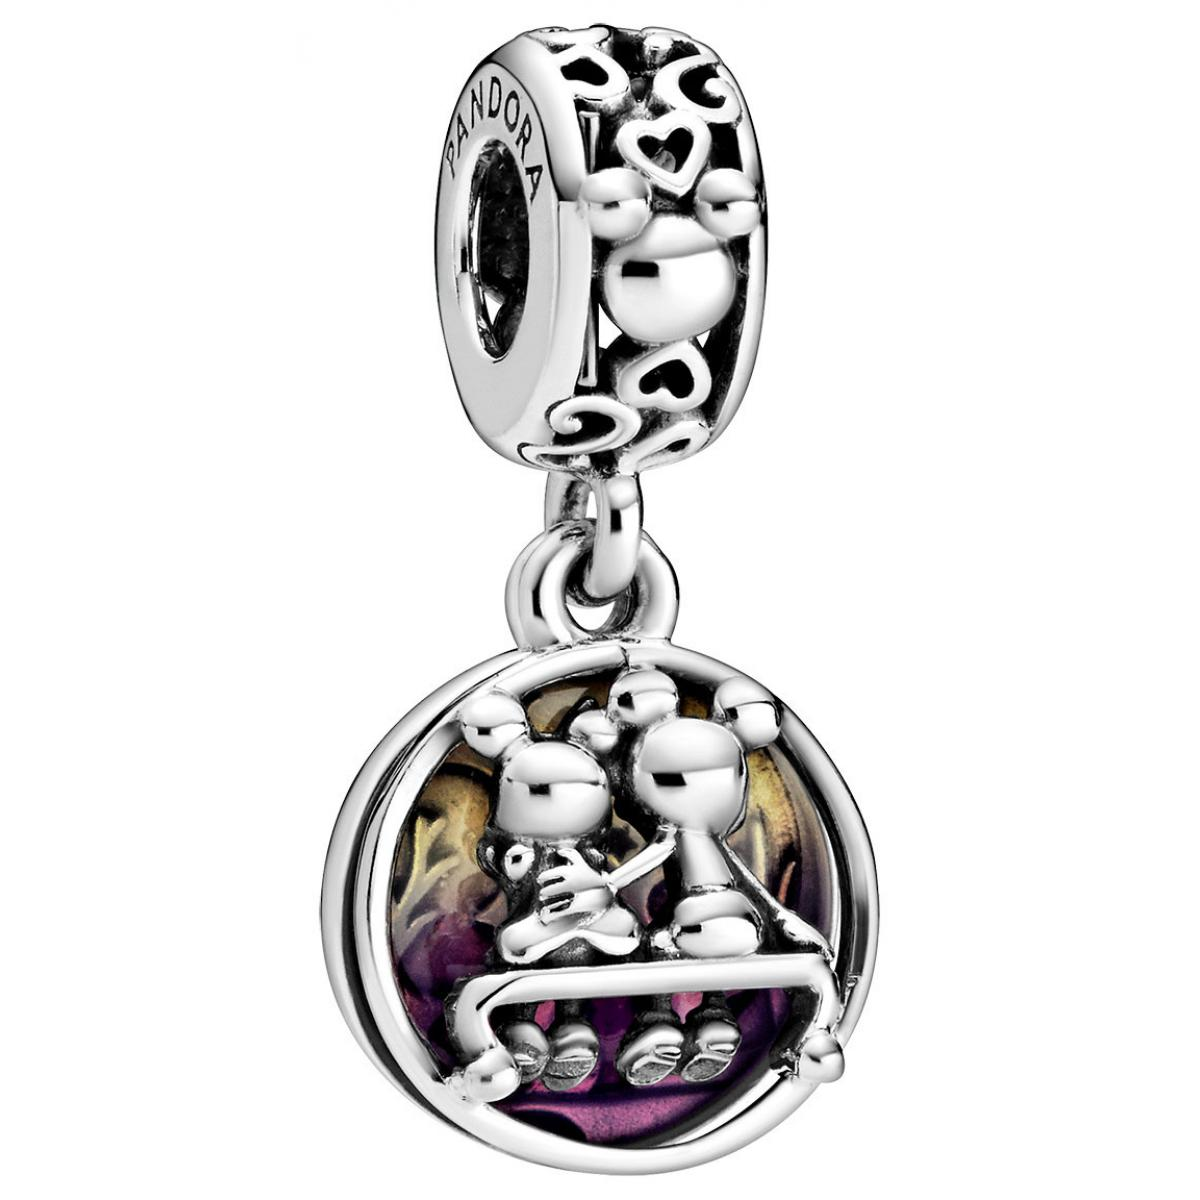 Pandora Charm Pendant Disney 798866C01 - Mickey et Minnie Happily Ever After 798866C01 Pandora